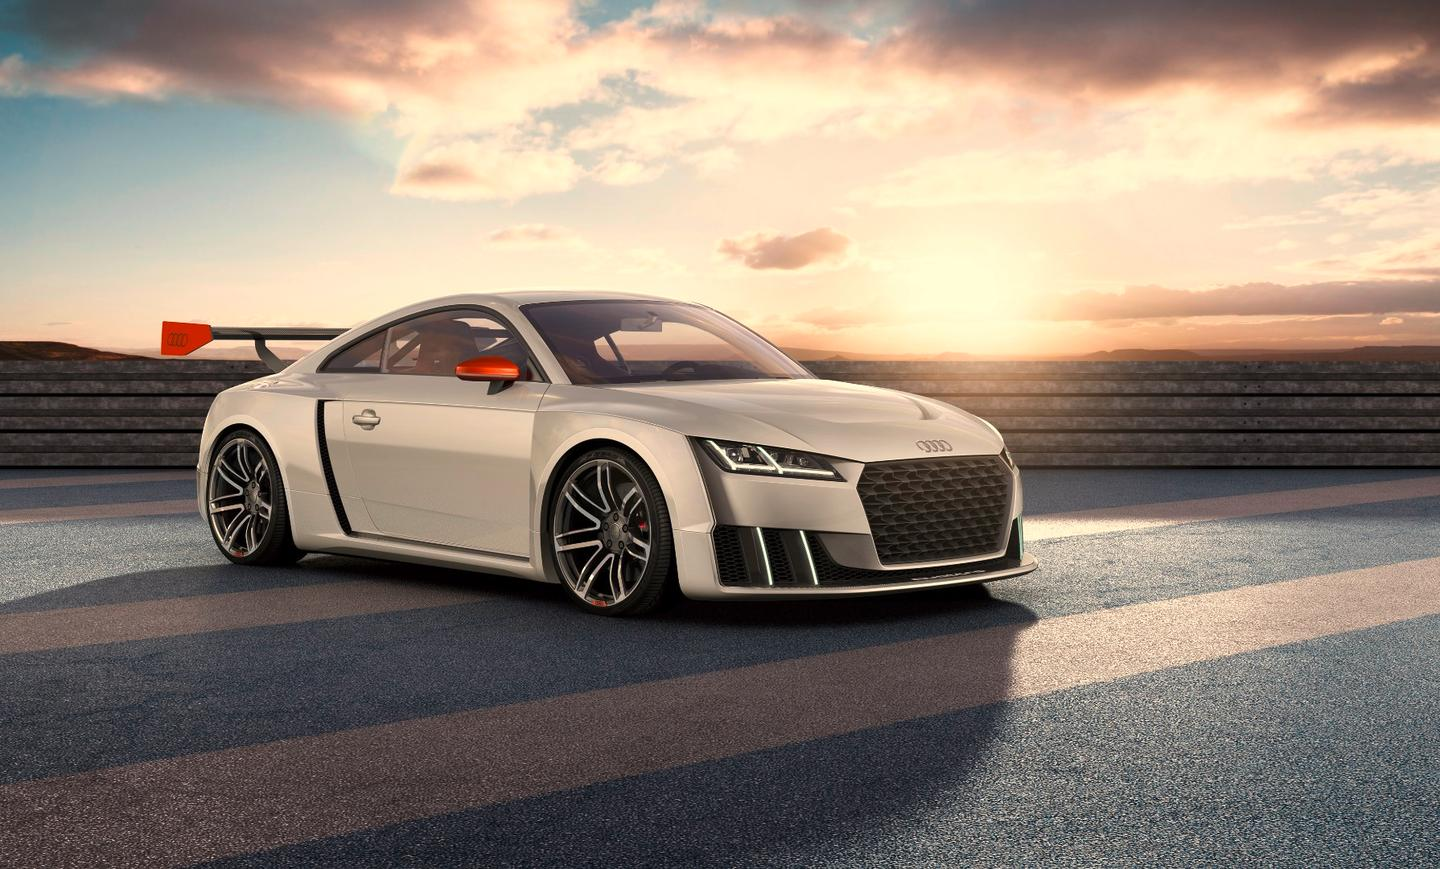 The Audi TT clubsport gets a serious widening